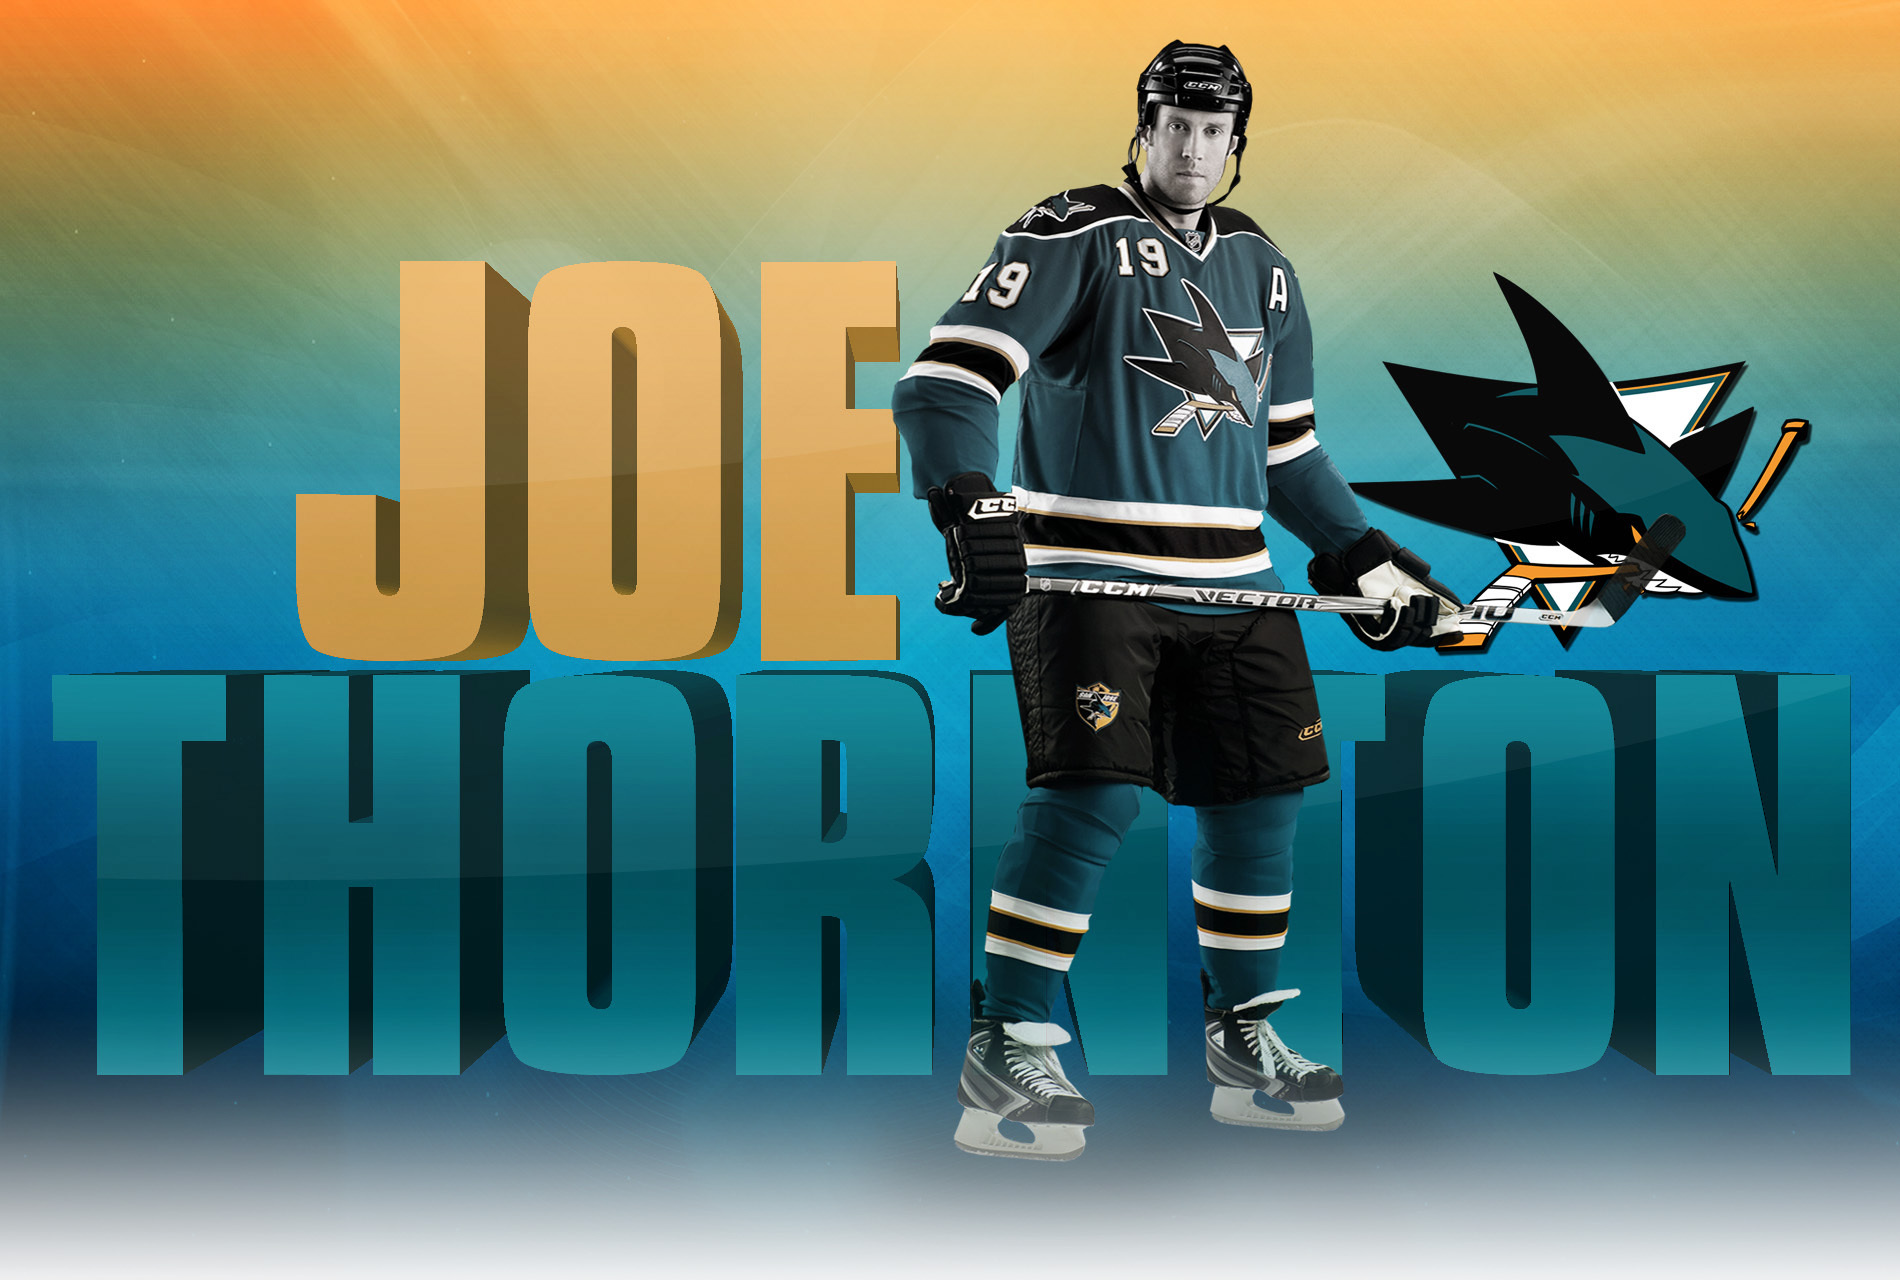 Joe Thornton wallpapers and images   wallpapers pictures photos 1900x1280